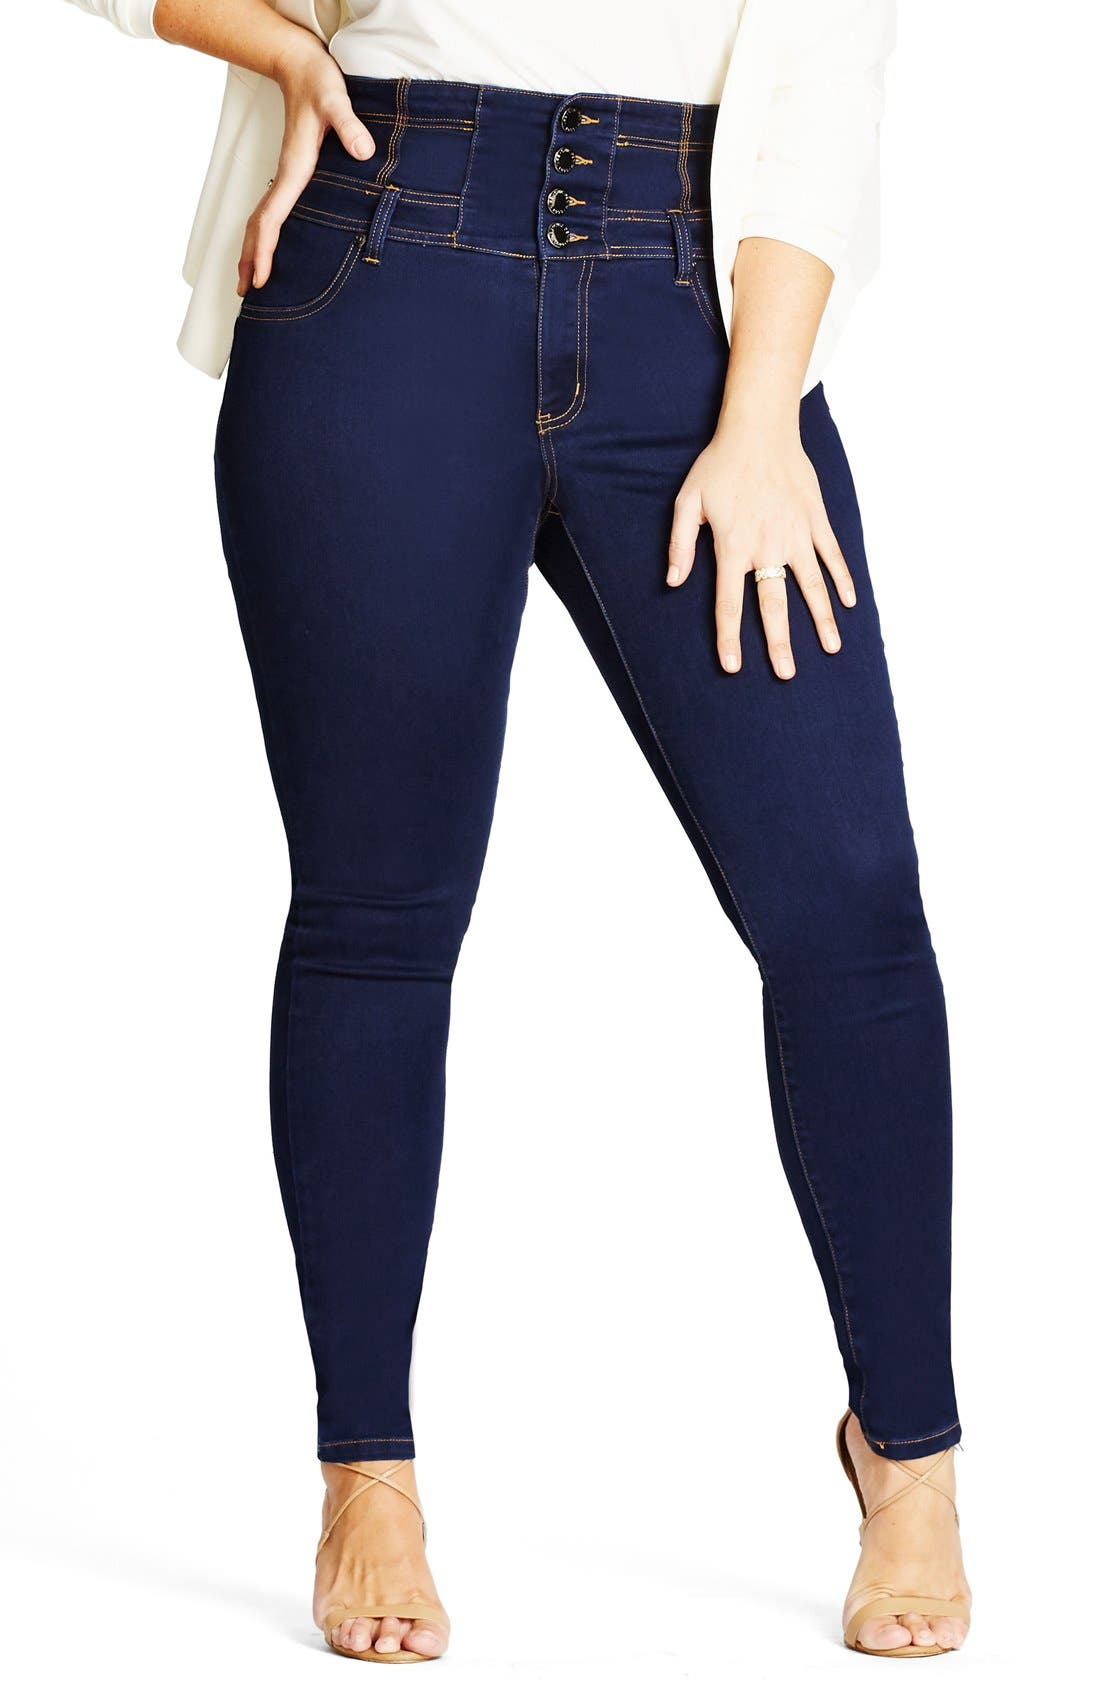 Alternate Image 1 Selected - City Chic Harley Corset Waist Stretch Skinny Jeans (Plus Size)